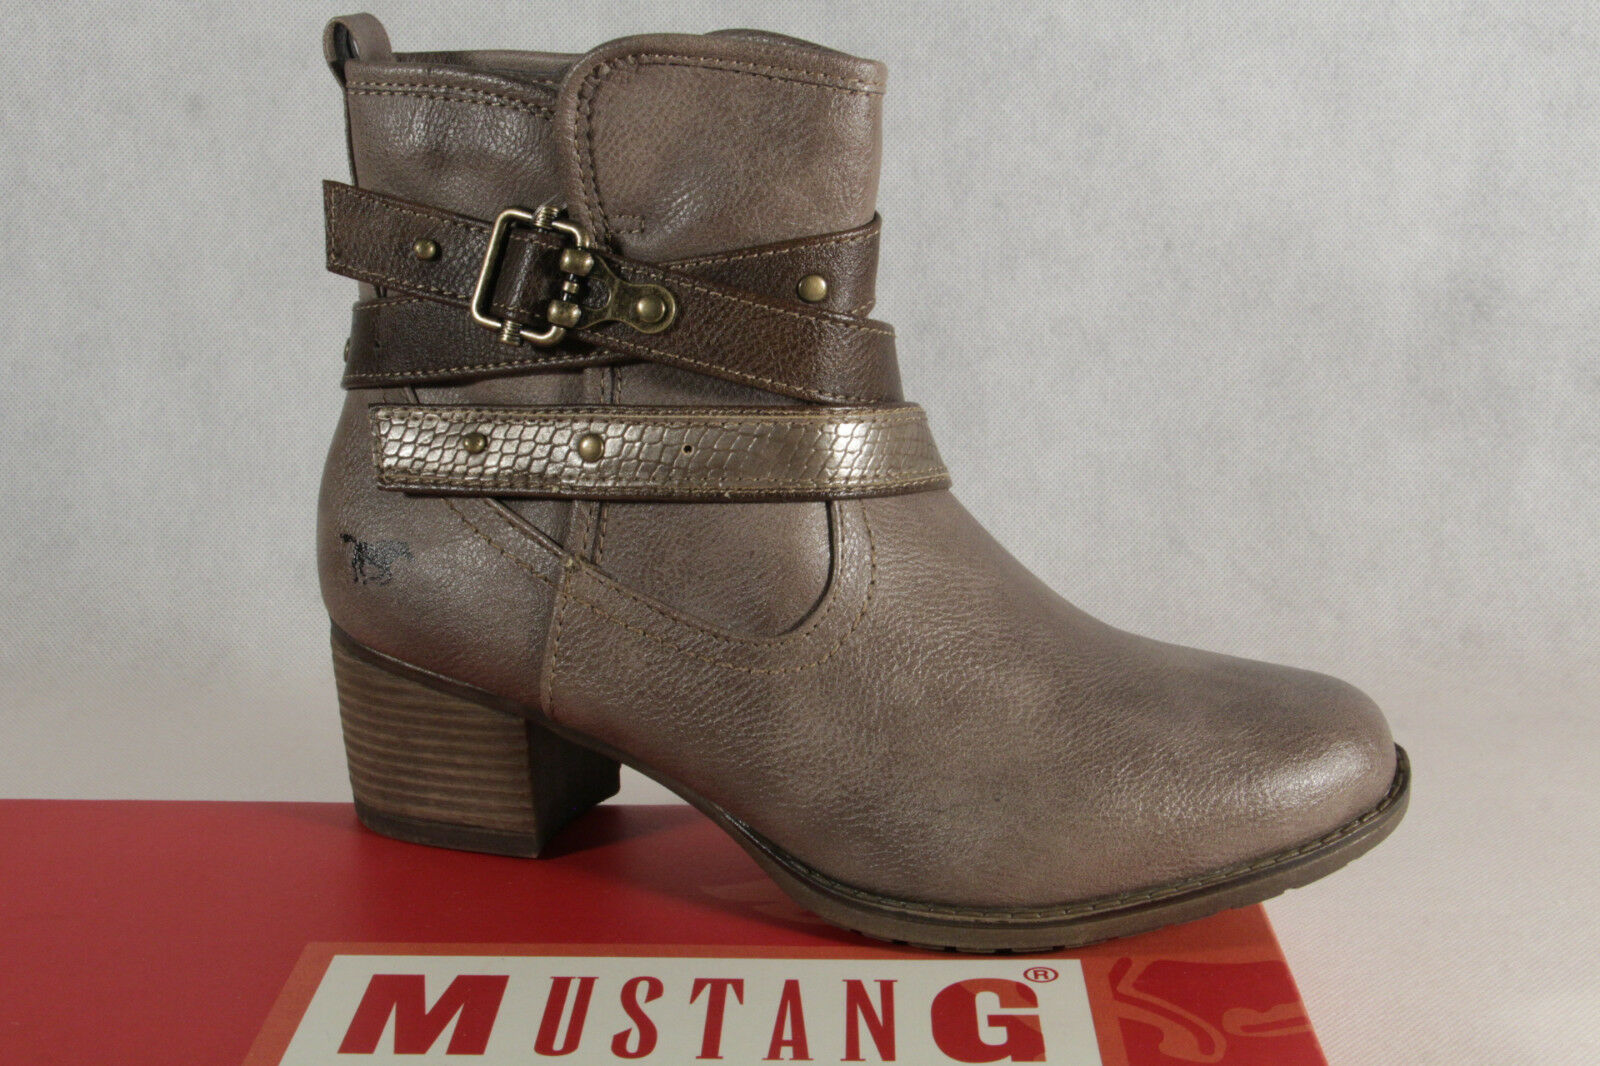 Mustang Women's Boots Ankle Boots Taupe Brown Lightly Lined 1197 New